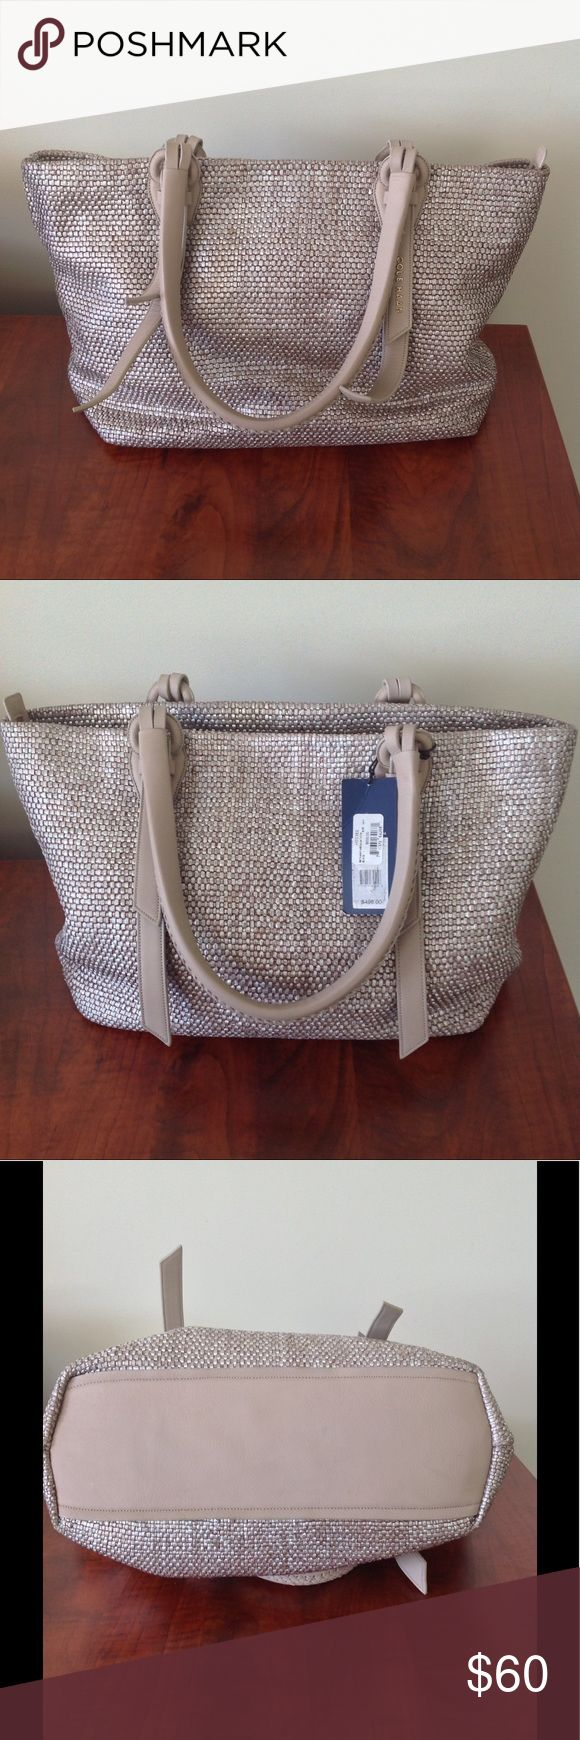 """Cole Haan Bethany Weave Medium Tote 👜❤️ Lovely Cole Haan Purse! Handwoven leather with silver finish. The silver finish has worn off or imprinted on the smooth leather places as shown in pictures. Otherwise this Purse is in great condition and includes original tags!  Just been sitting in the back of my closet for a while. 17"""" L x 11.5"""" H x 9"""" D.  Smooth leather is a pink/grey color. Gold toned hardware. Zipped internal pouch, Blazer Blue lining, and a zip closure to keep your stuff safe…"""